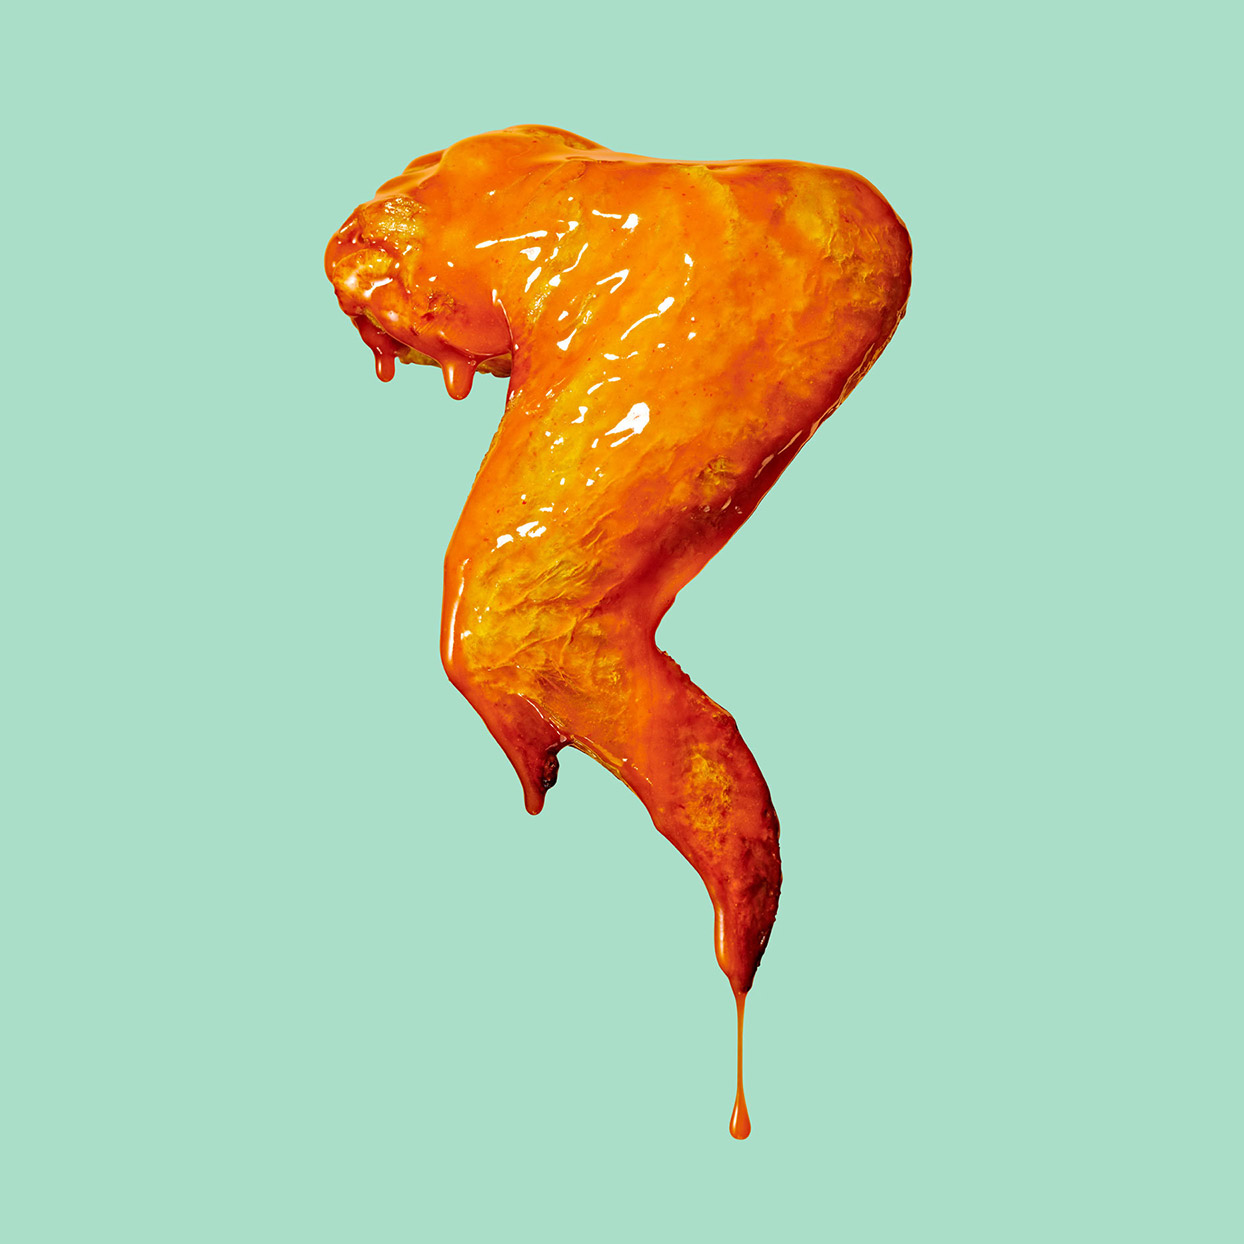 buffalo chicken wing whole against a mint green background